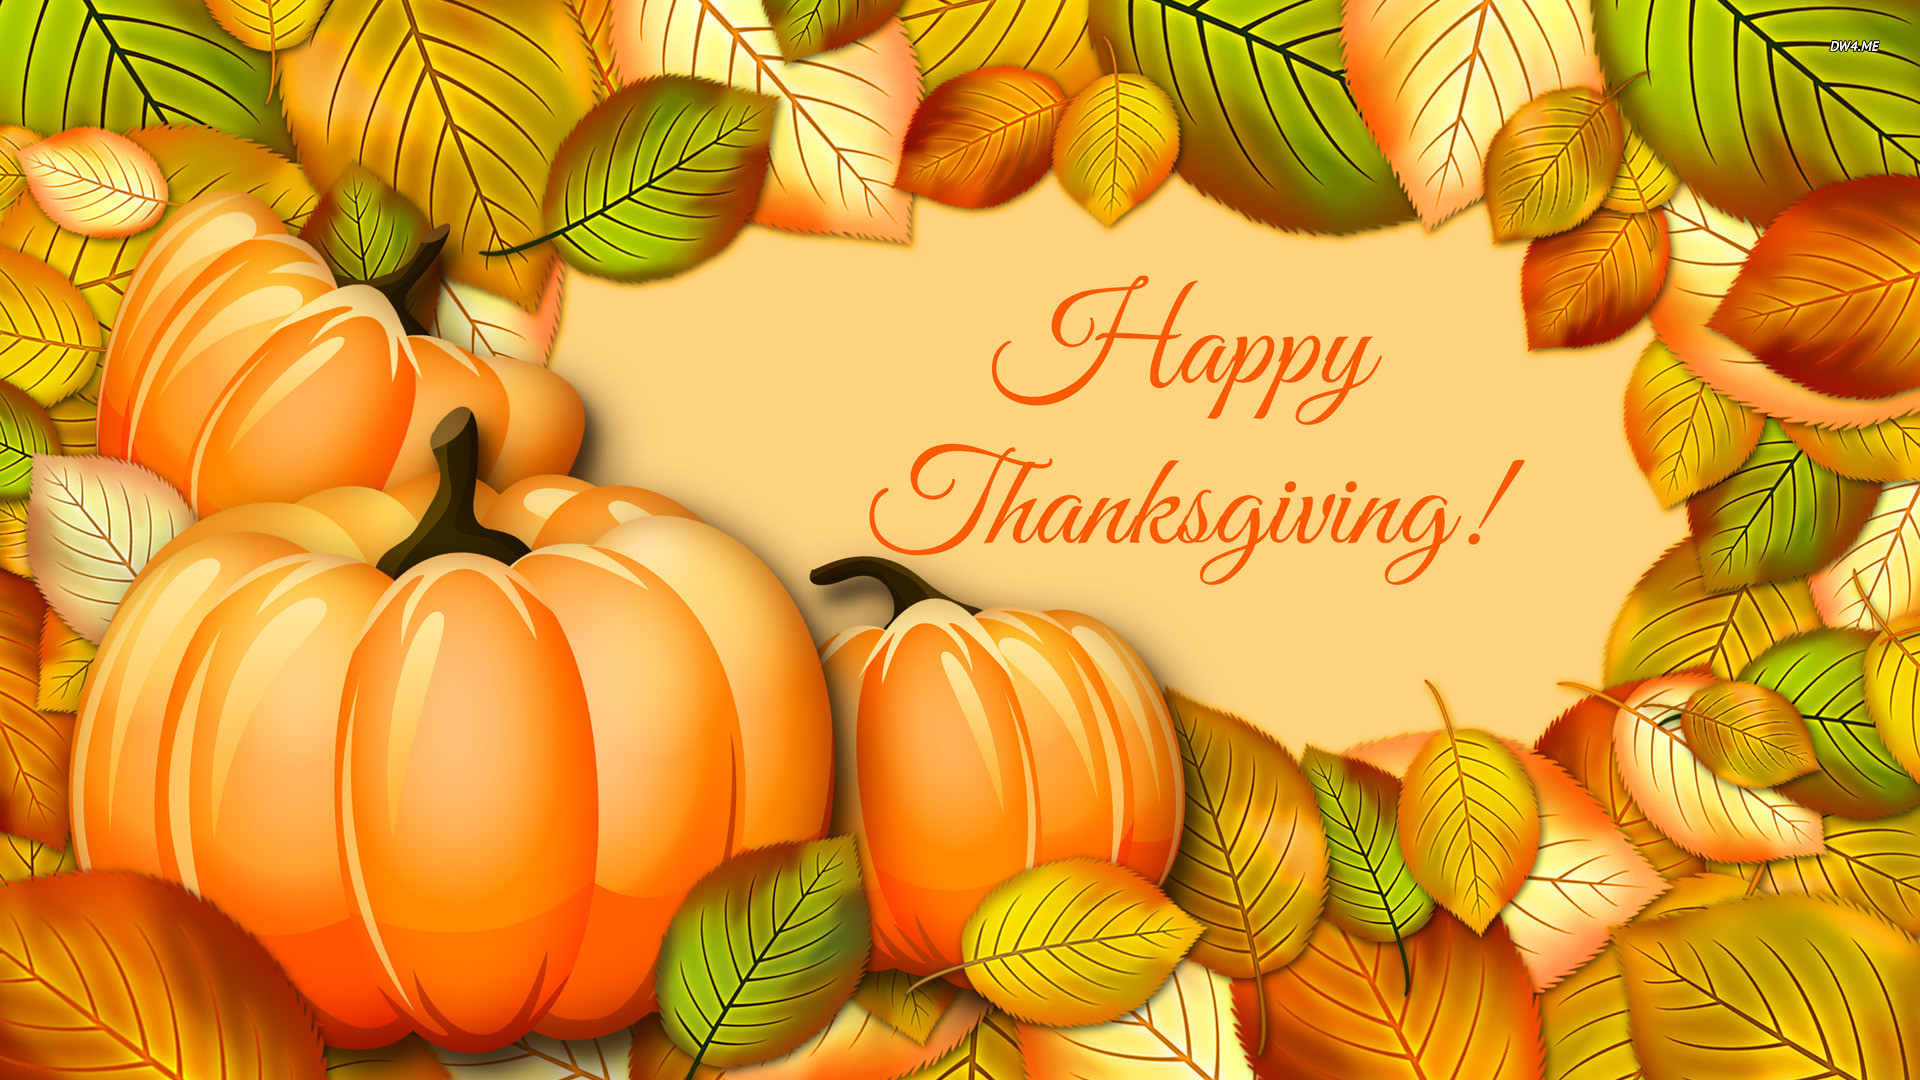 Happy Thanksgiving! wallpaper – Holiday wallpapers – #1842